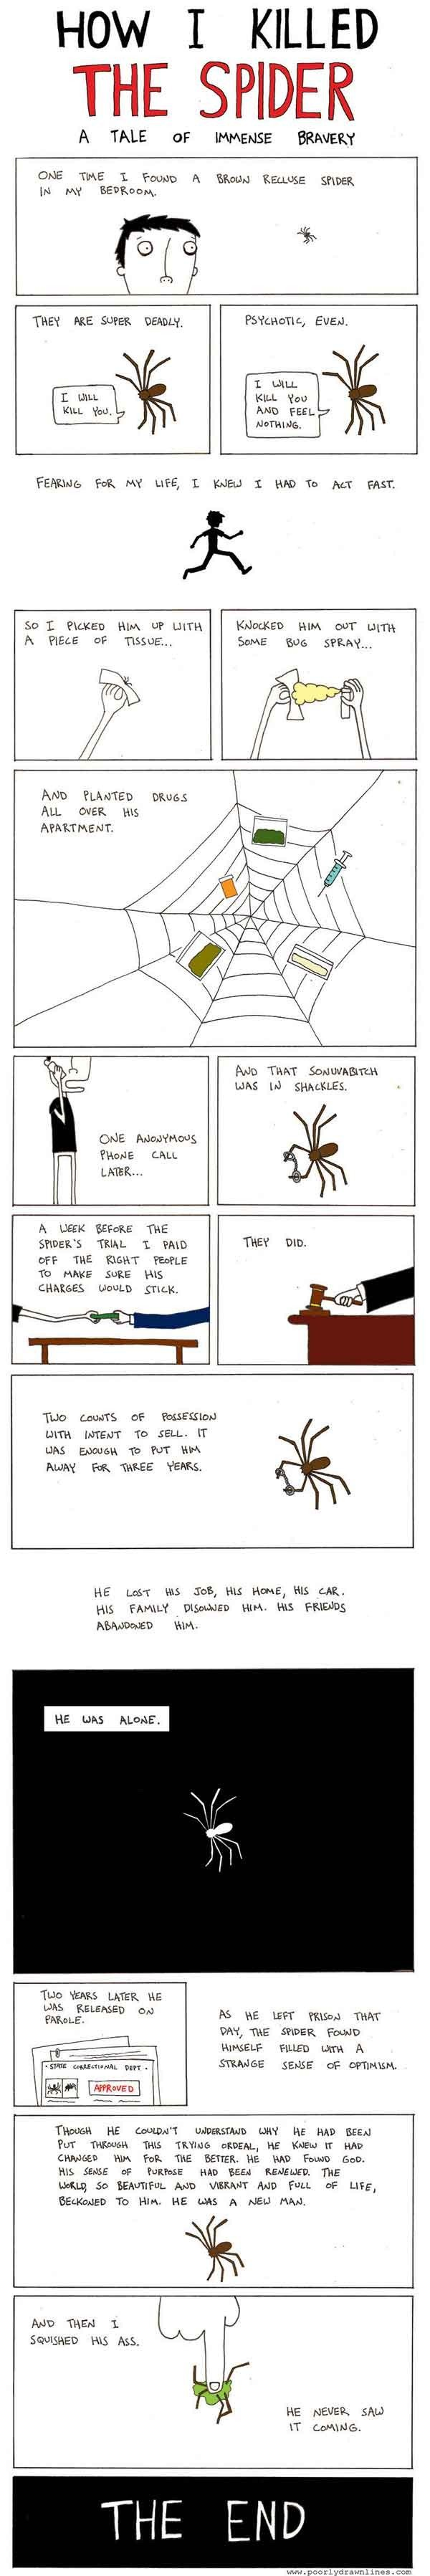 A Tale of Bravery. Enjoy (not my OC). HOW I KILLED THE SPIDER A TALE OF IMMENSE BRAVELY one nae 1 Fauna A Mara,: amuse S?\ DEK srjc, t Femme wk Nu' MFG, L wen 1